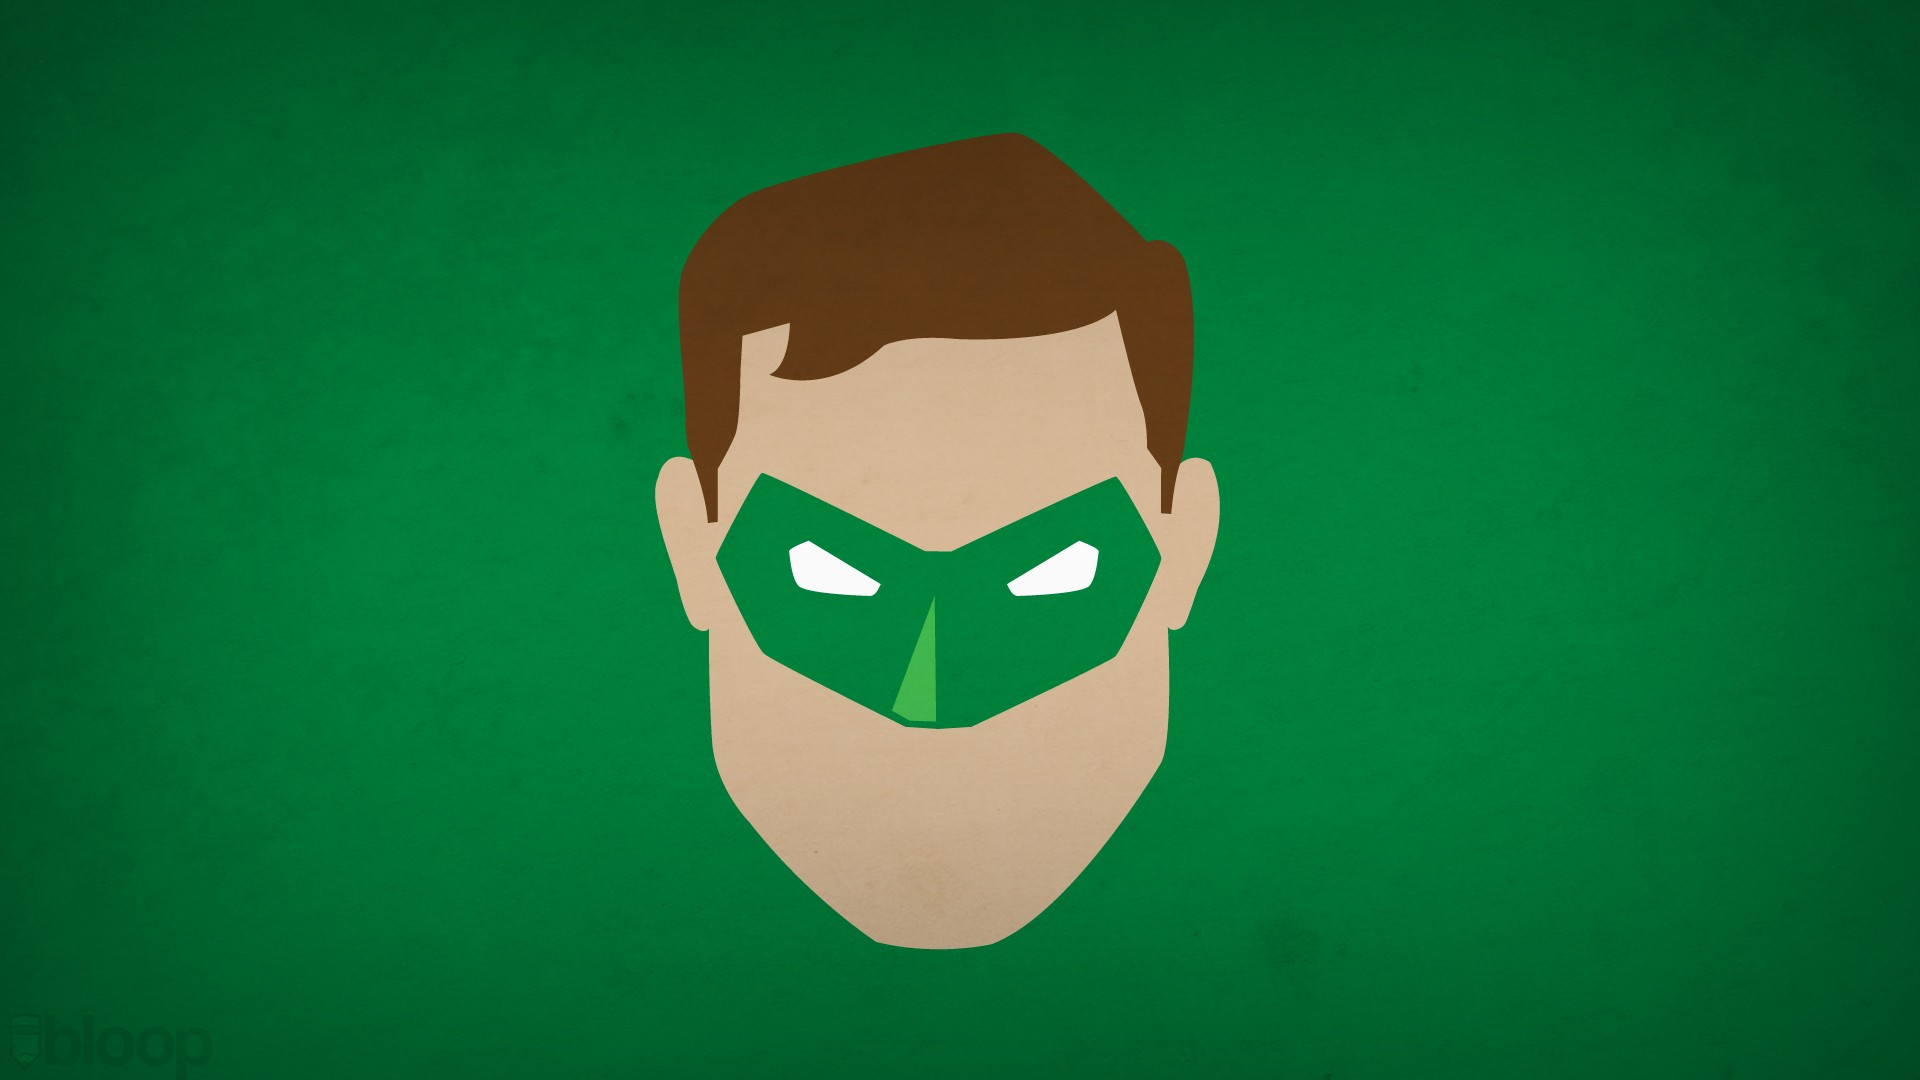 Green Lantern wallpaper   929259 1920x1080